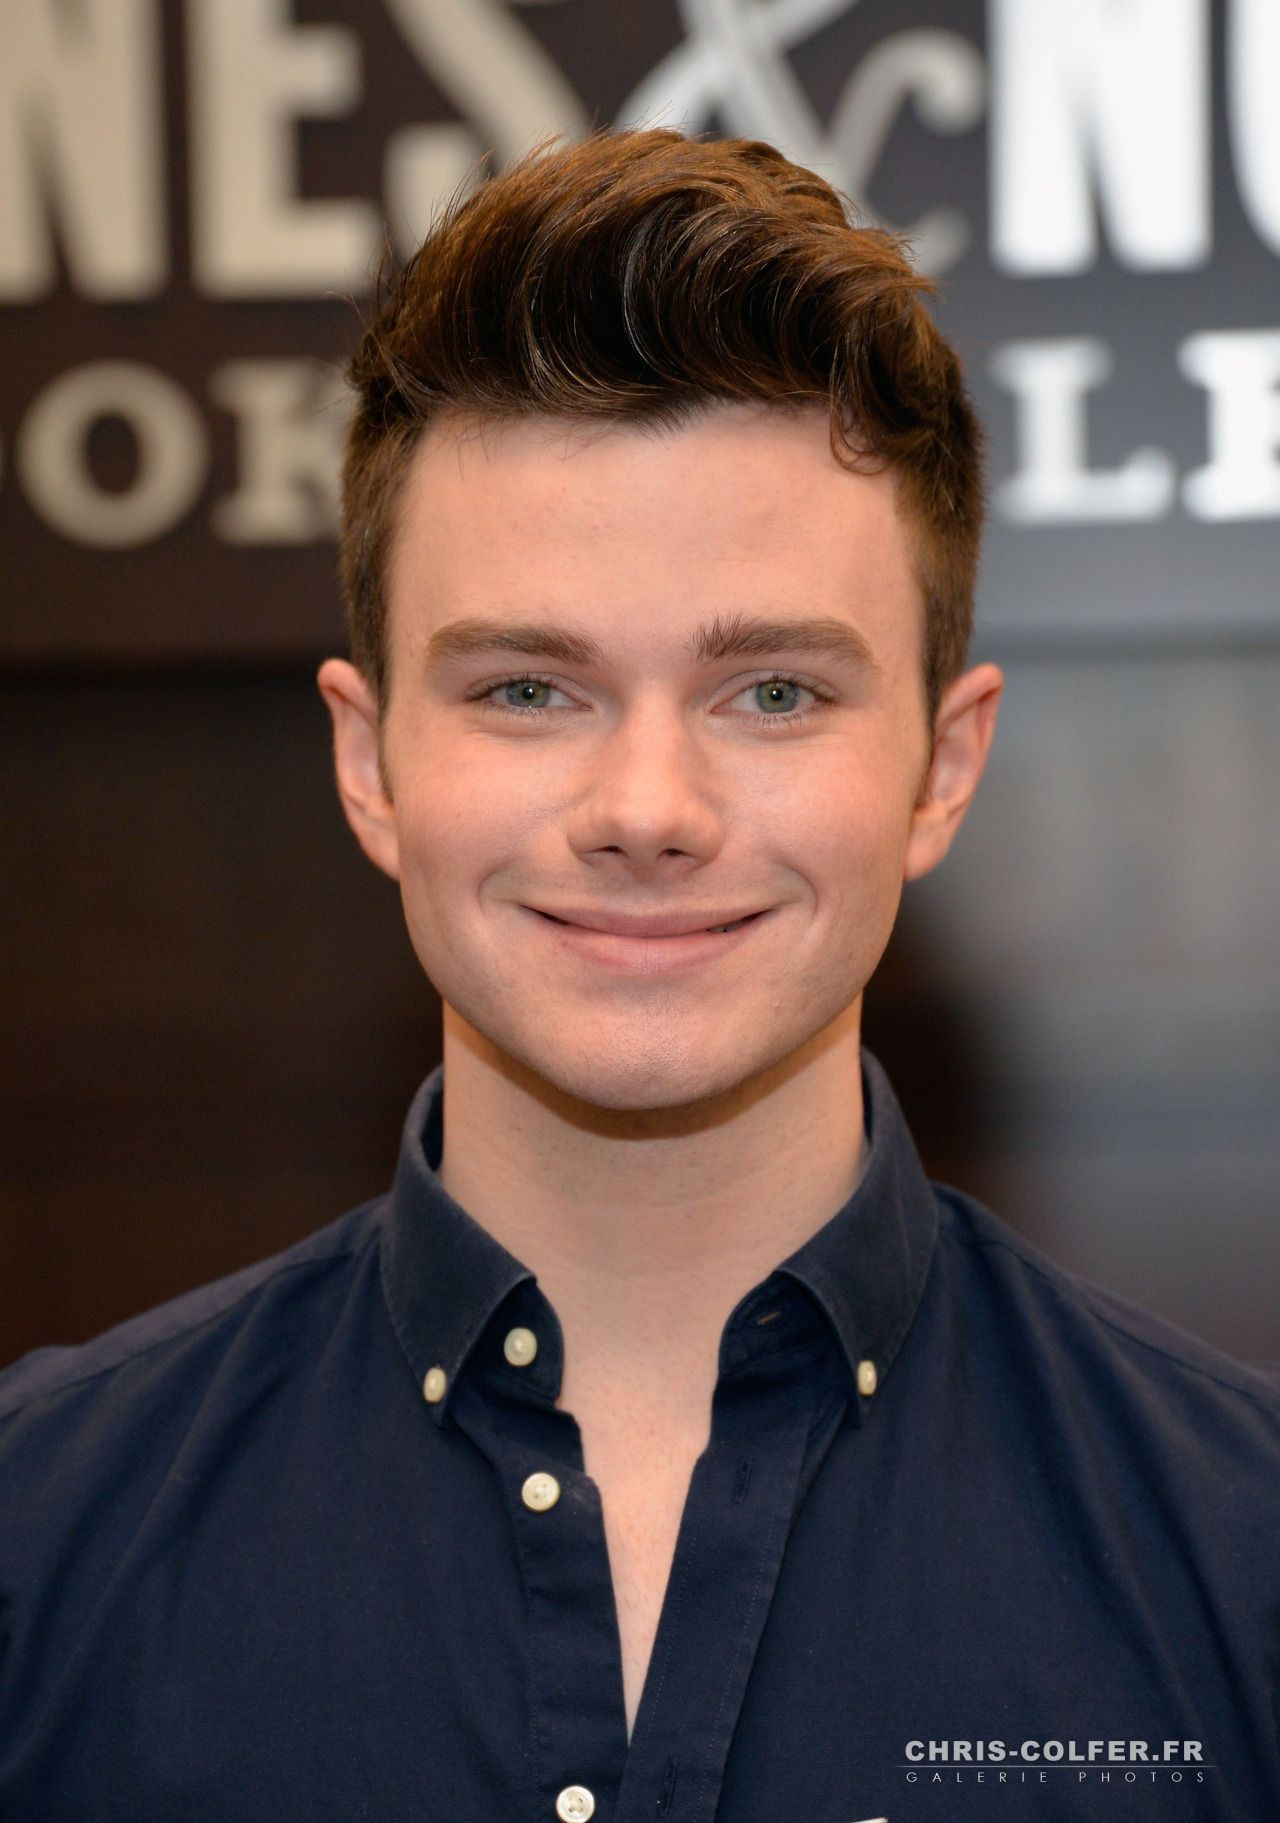 chris colfer mother